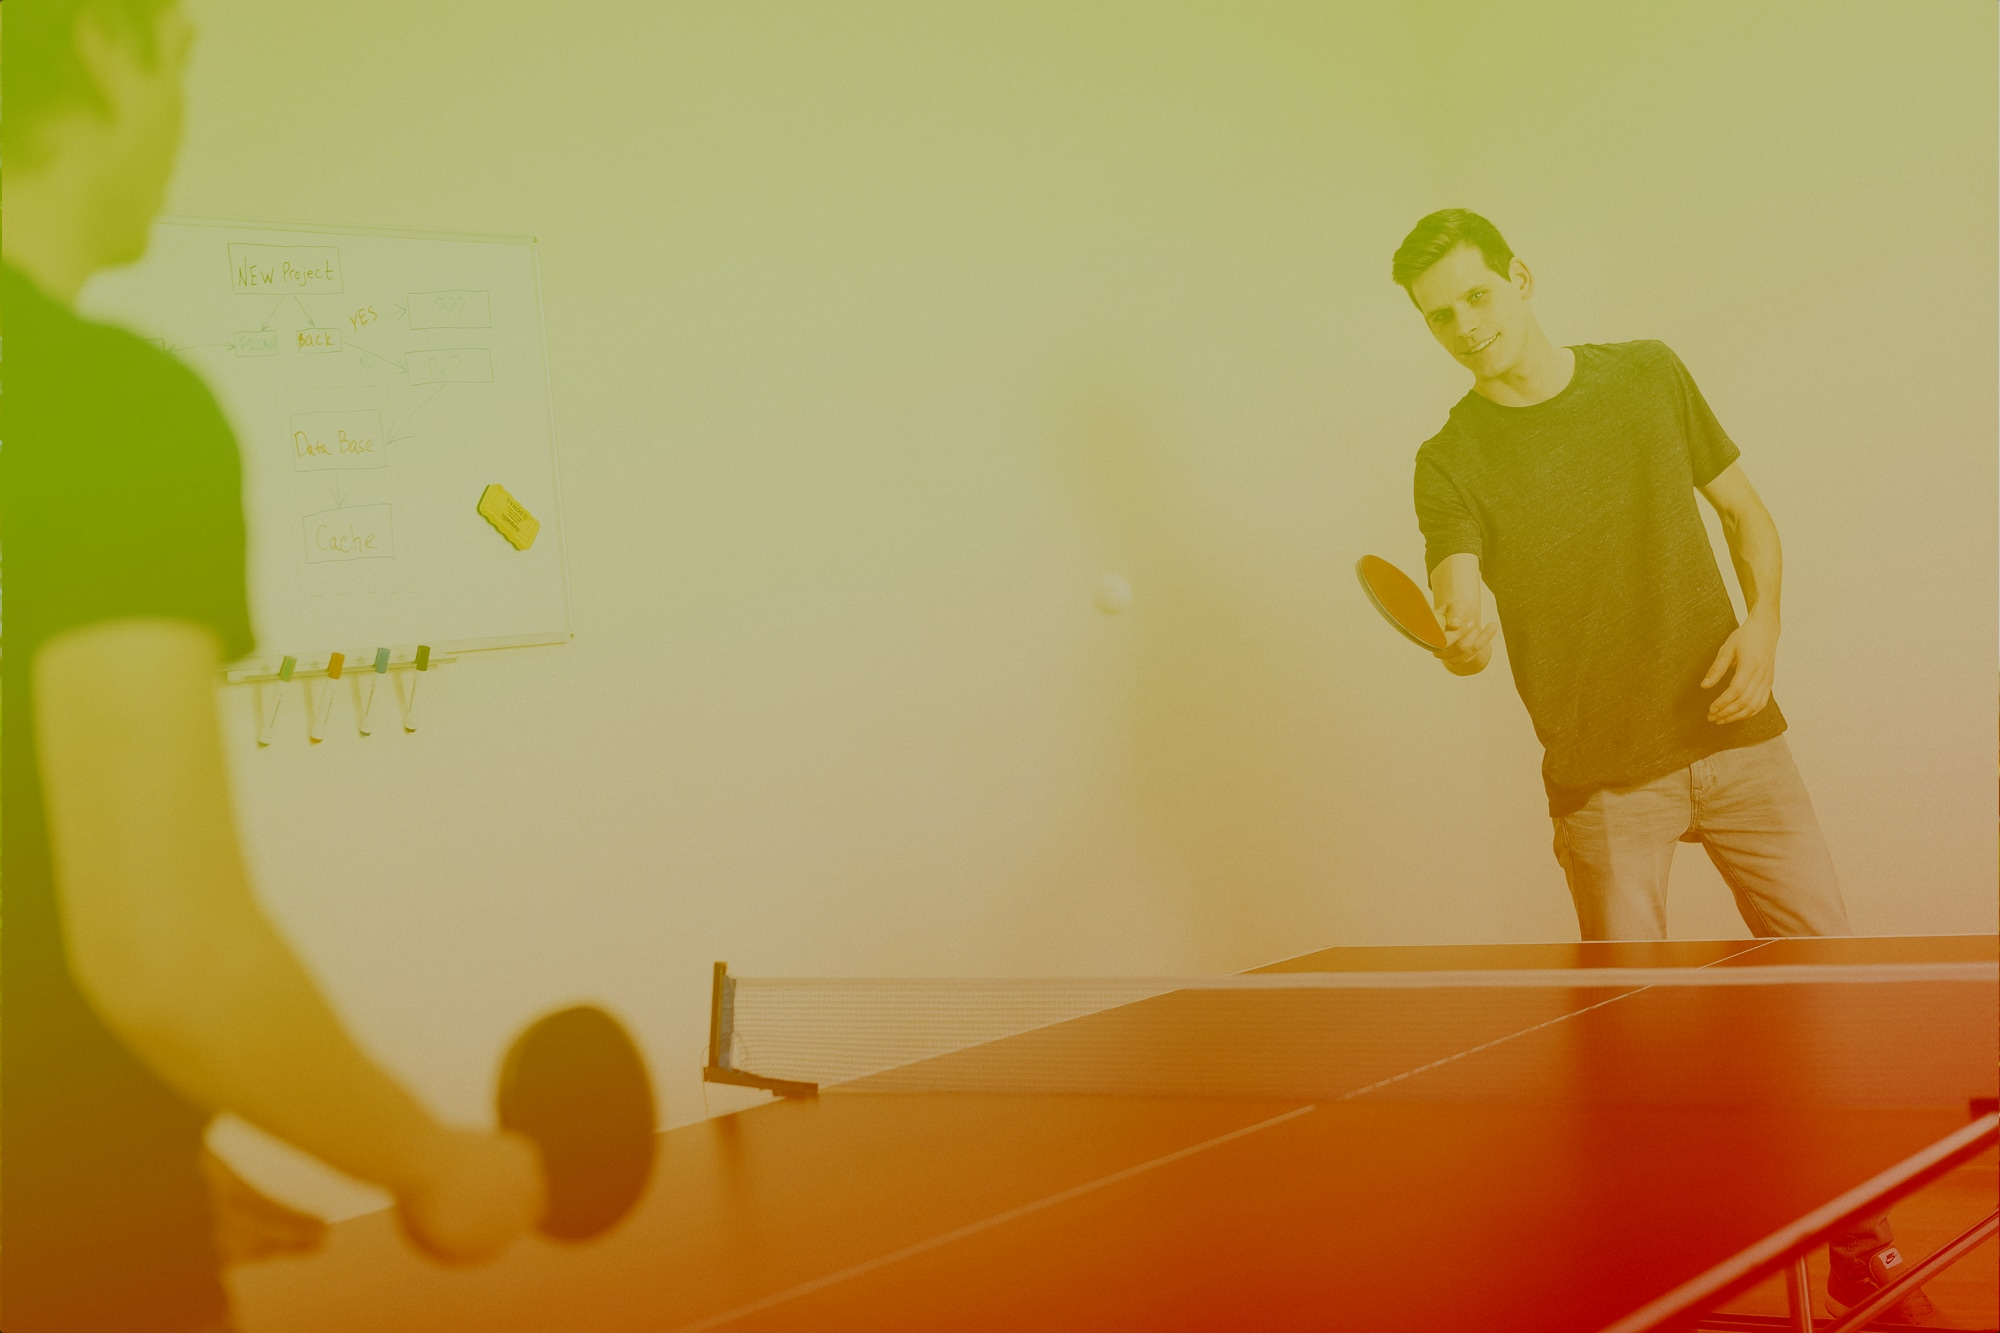 Anyone up for ping pong (or other games)?